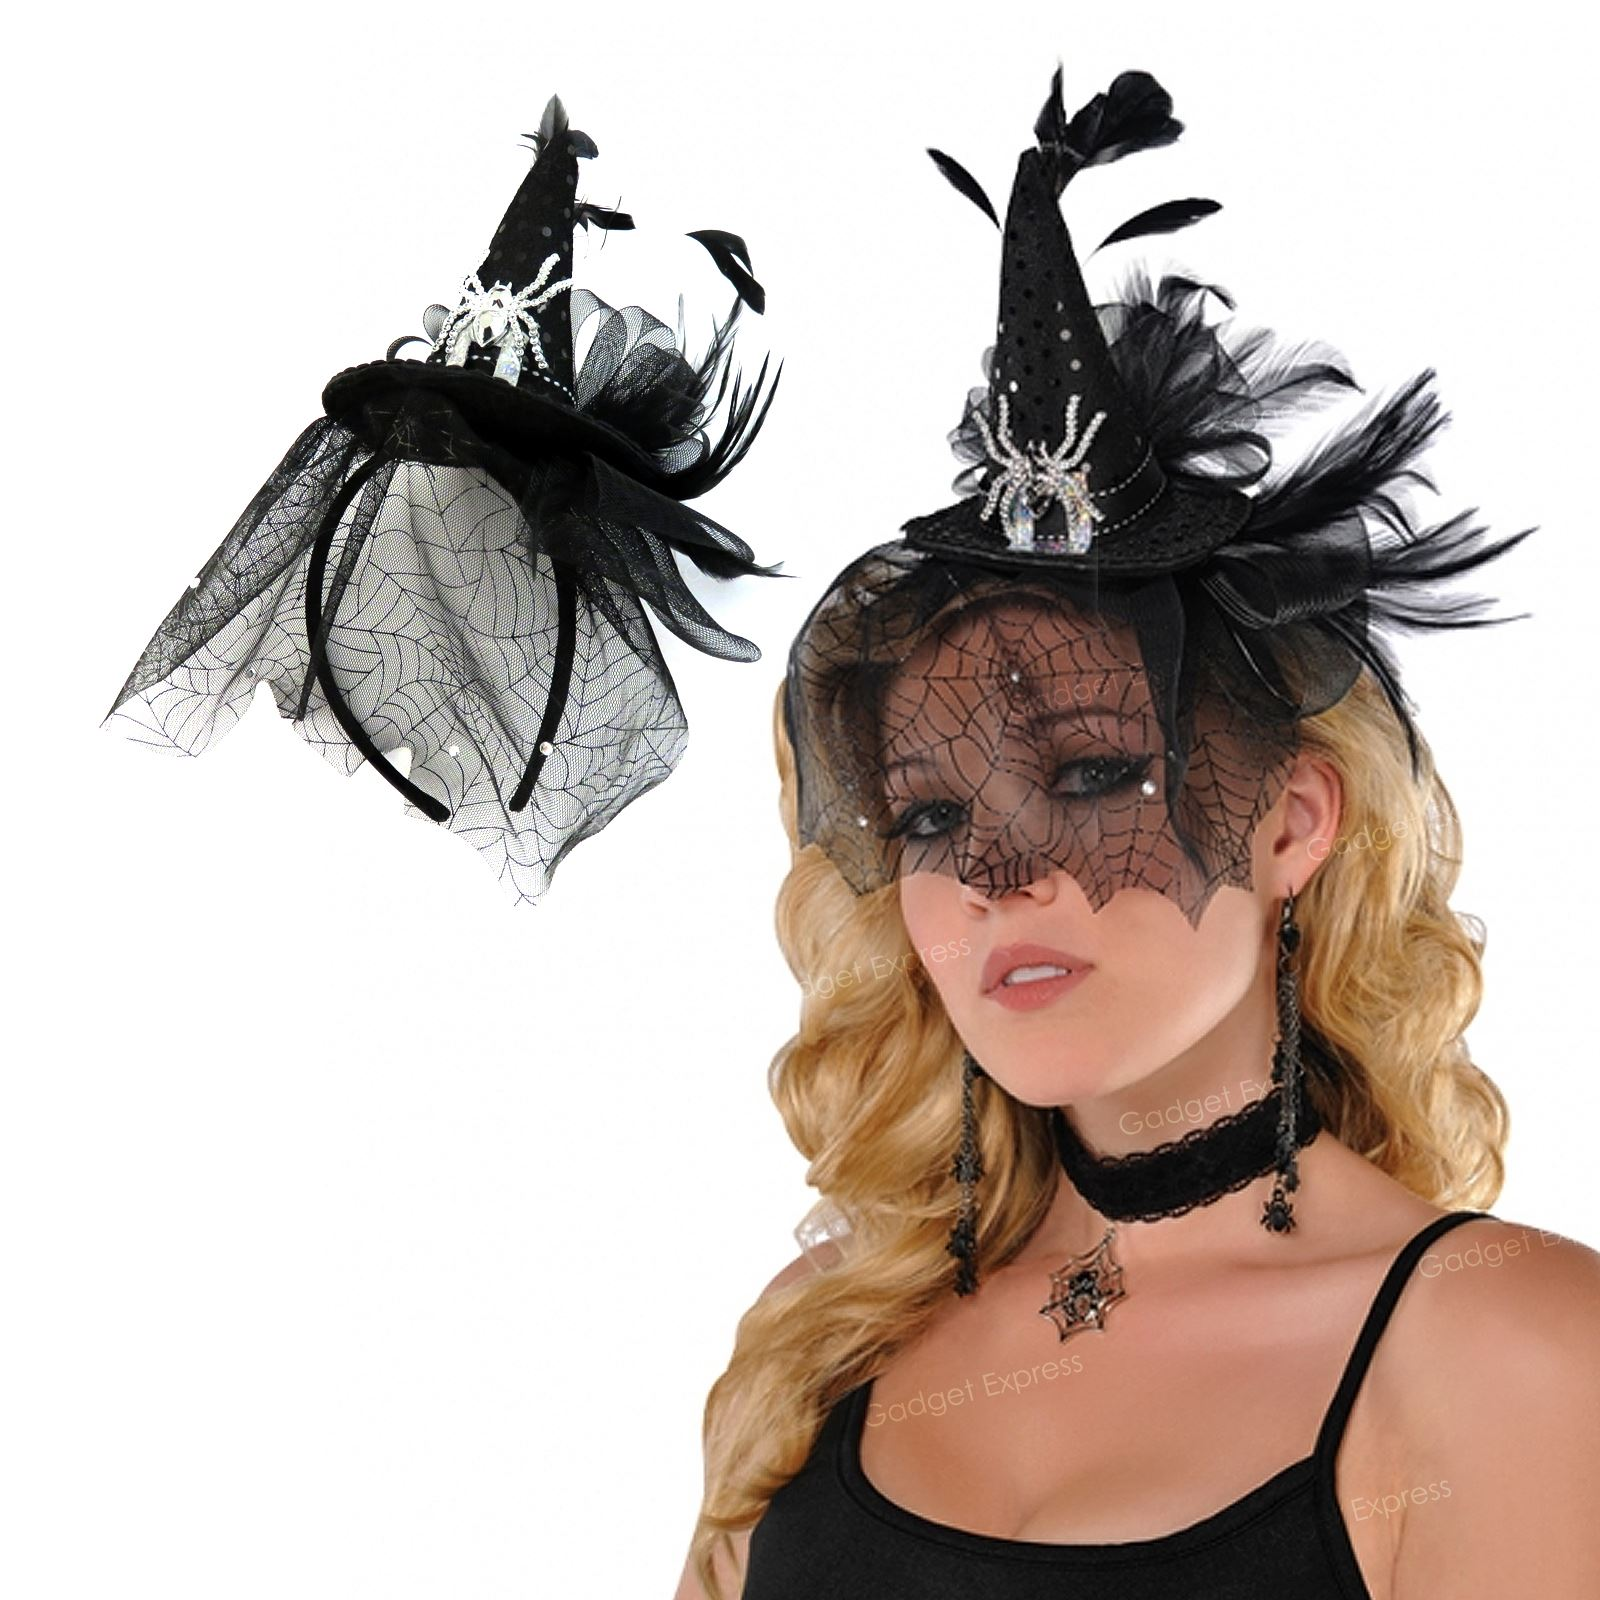 Details about Spiderweb Witch Witches Gothic Fascinator Hat on Headband  Halloween Fancy Dress 1367f80b257